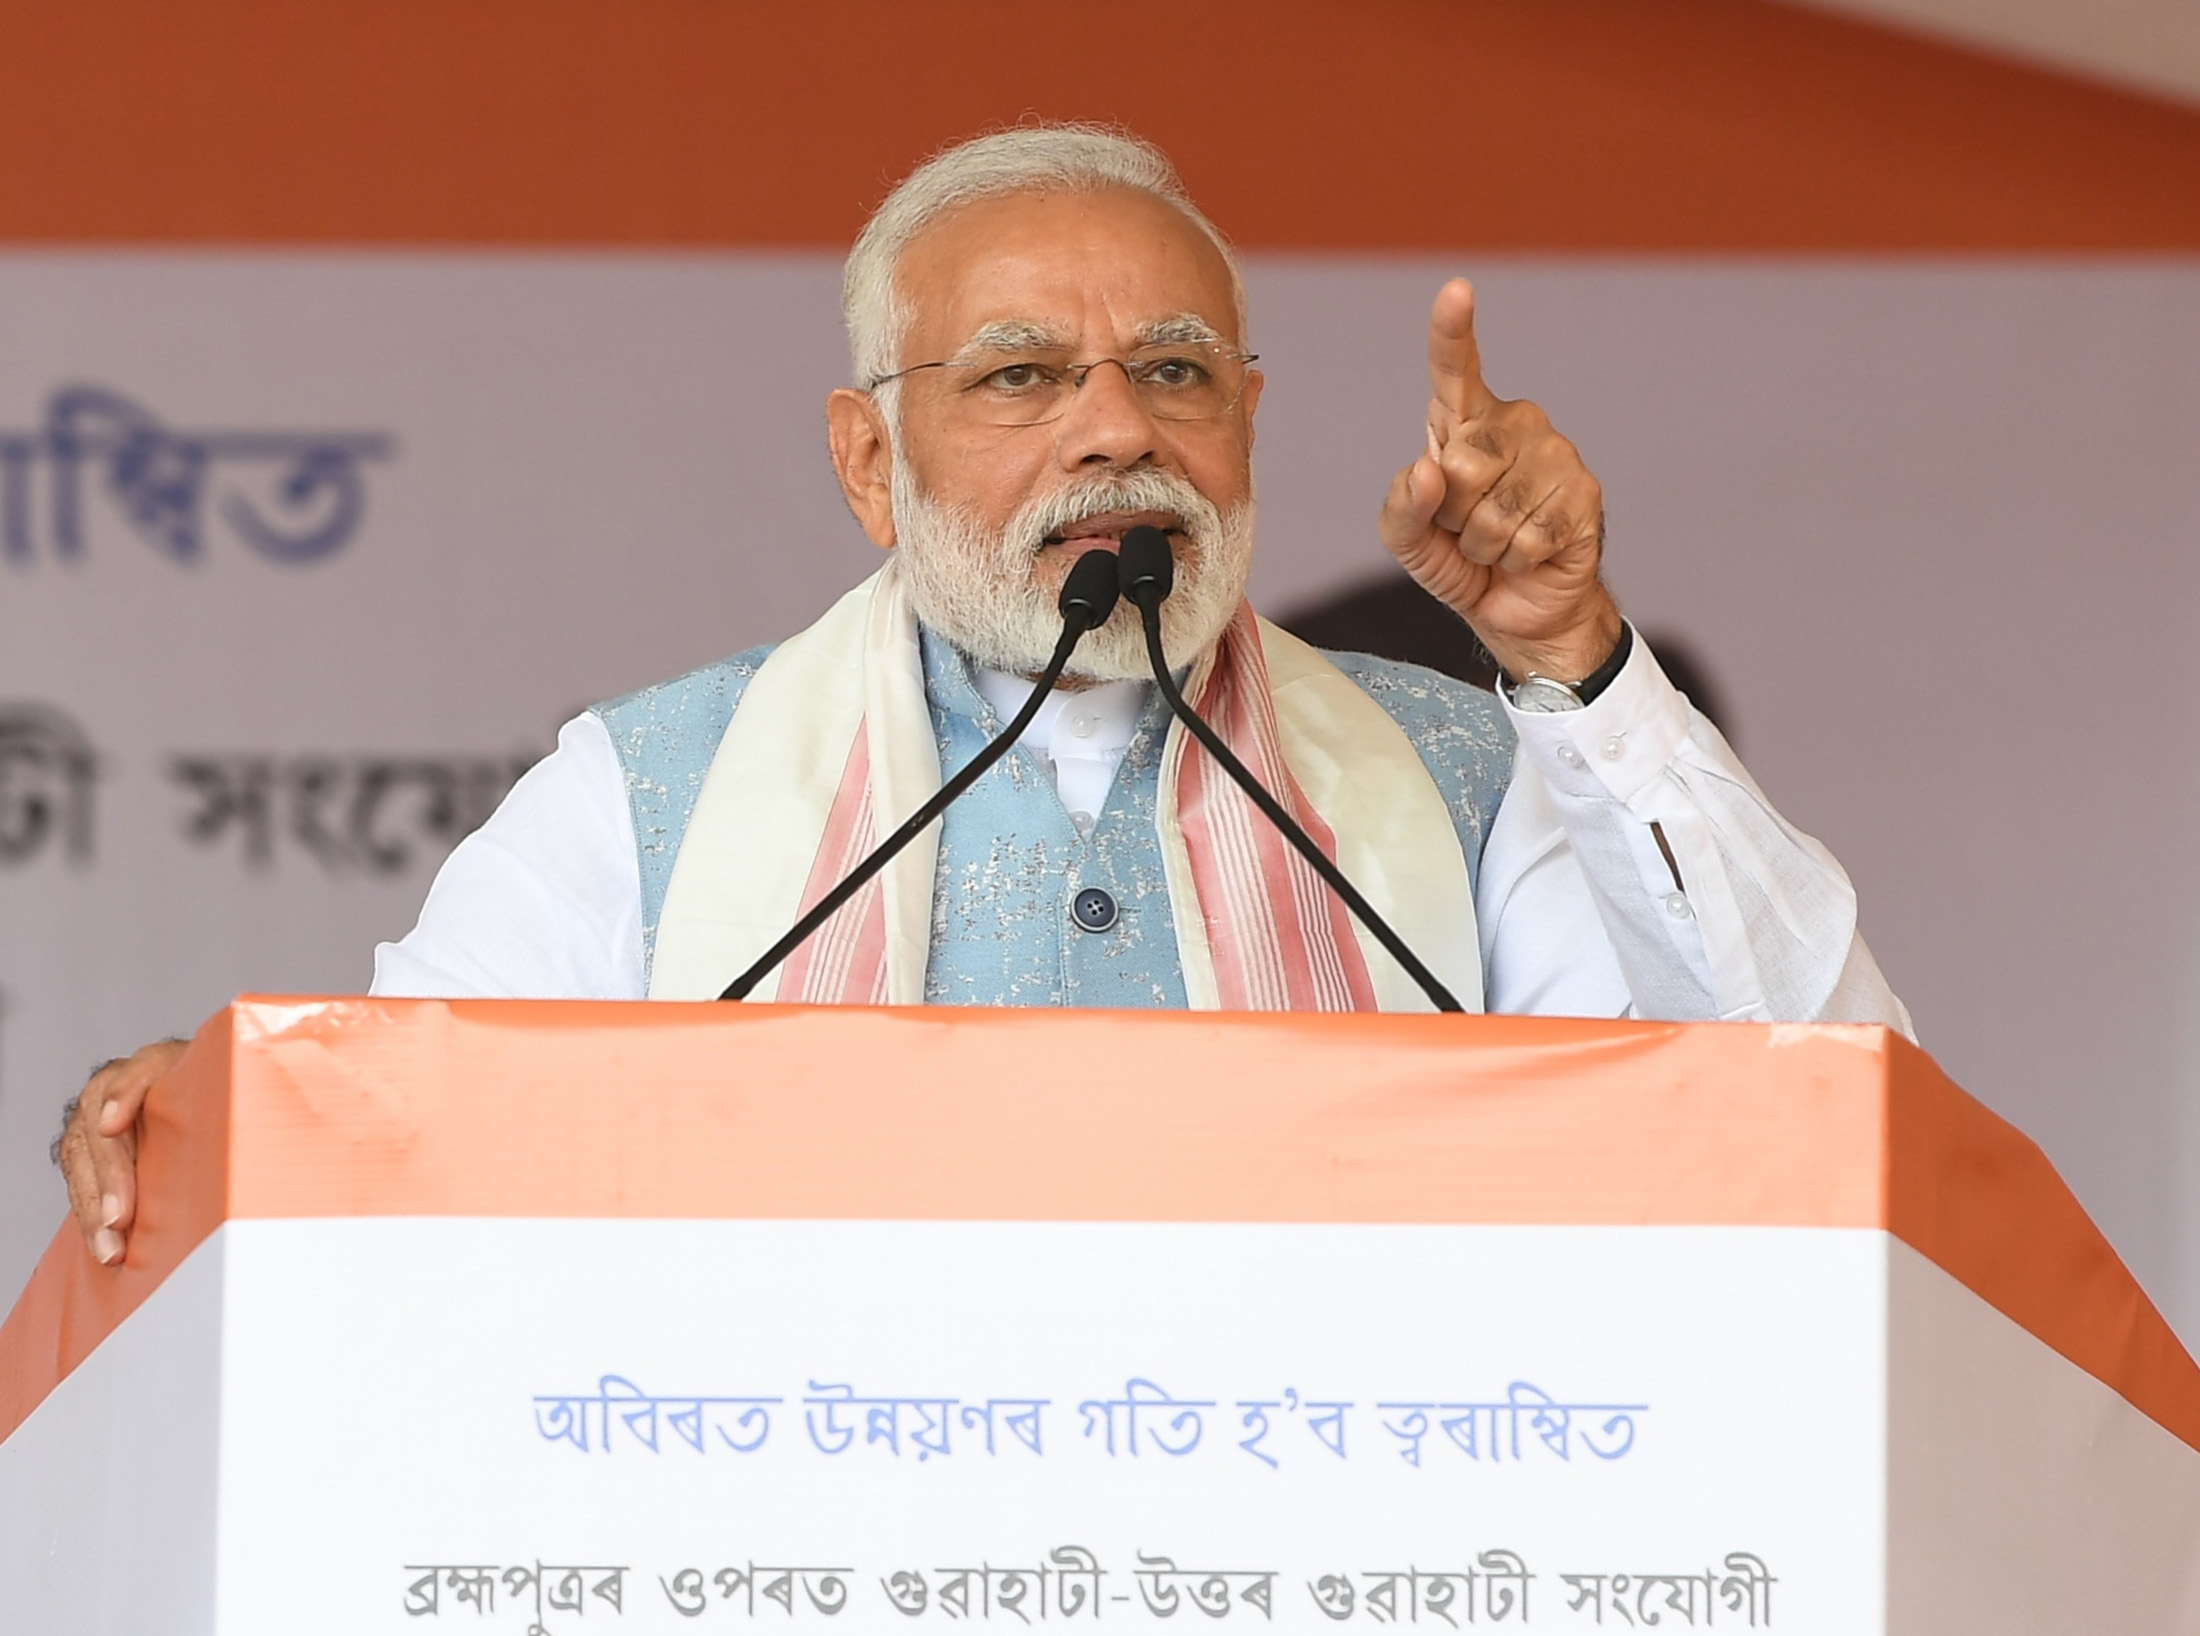 PM in Assam (February 09, 2019) | Prime Minister of India